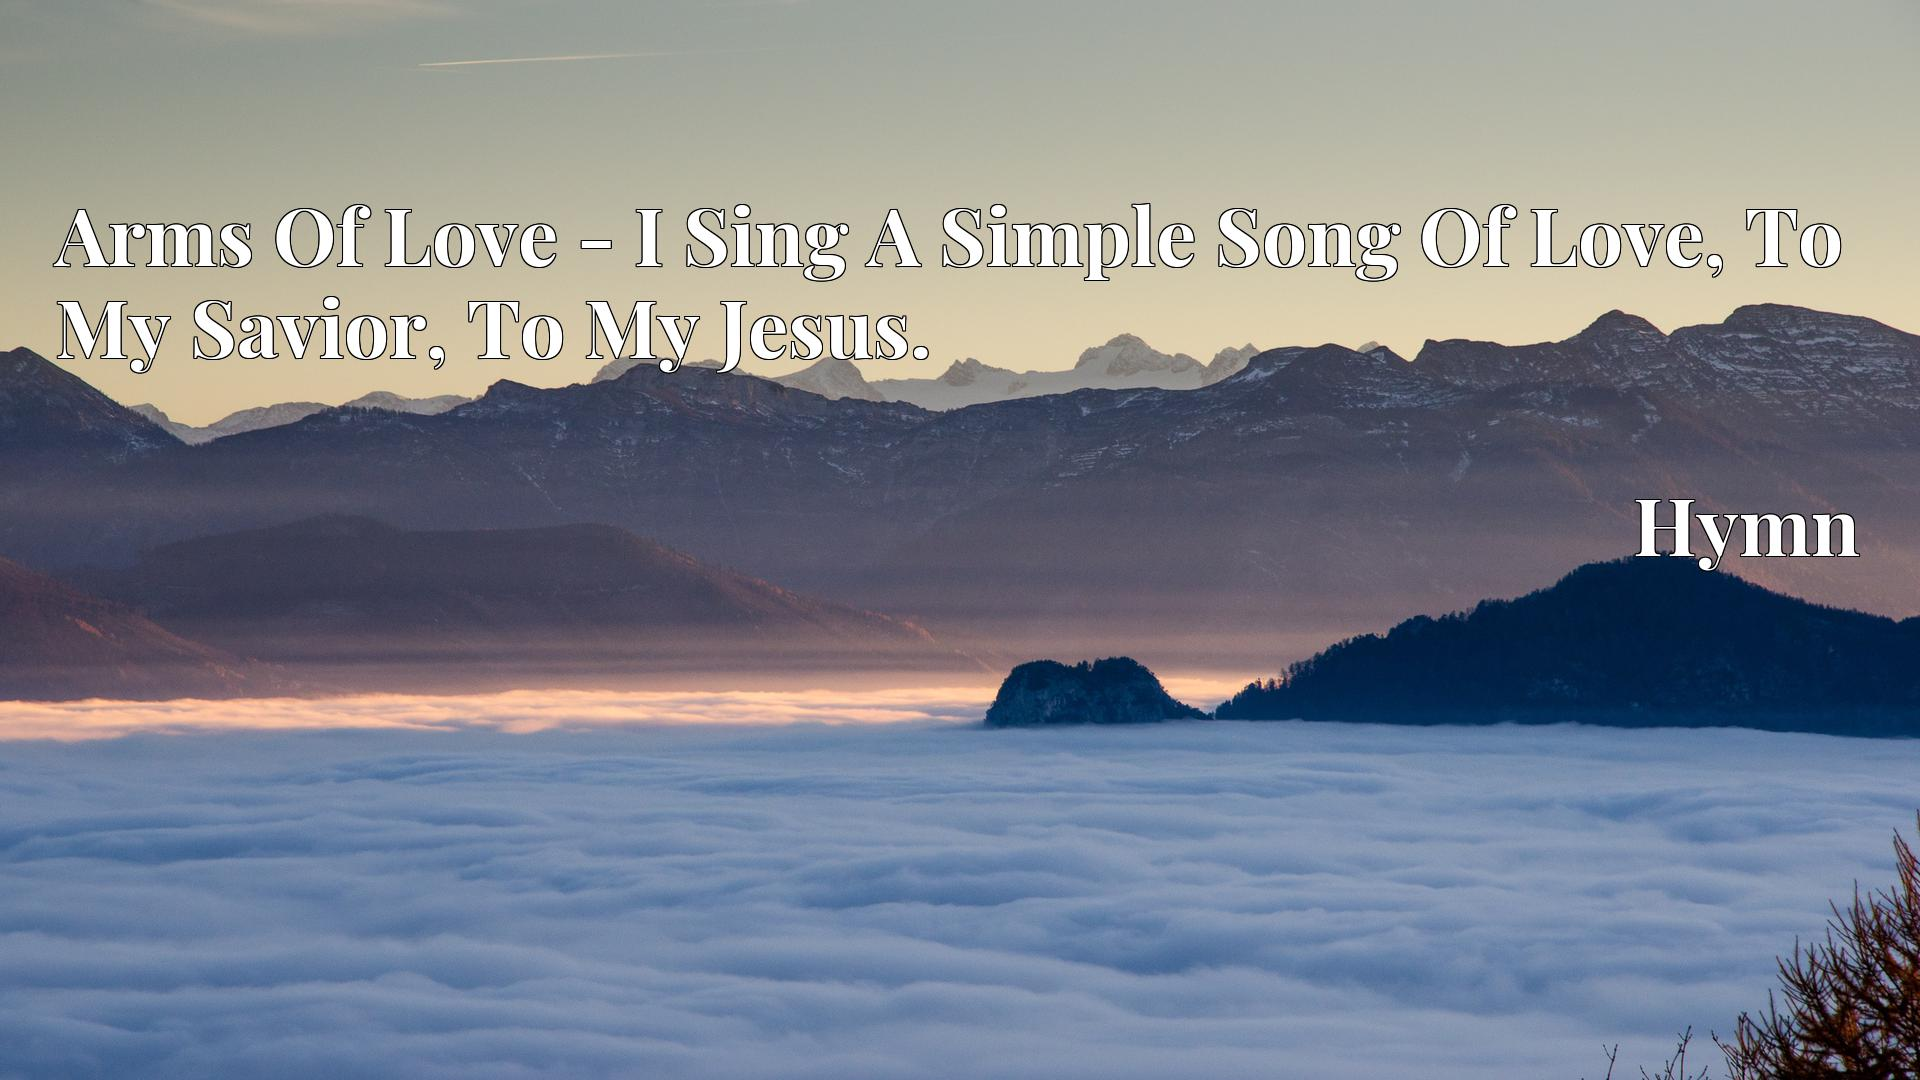 Arms Of Love - I Sing A Simple Song Of Love, To My Savior, To My Jesus. - Hymn